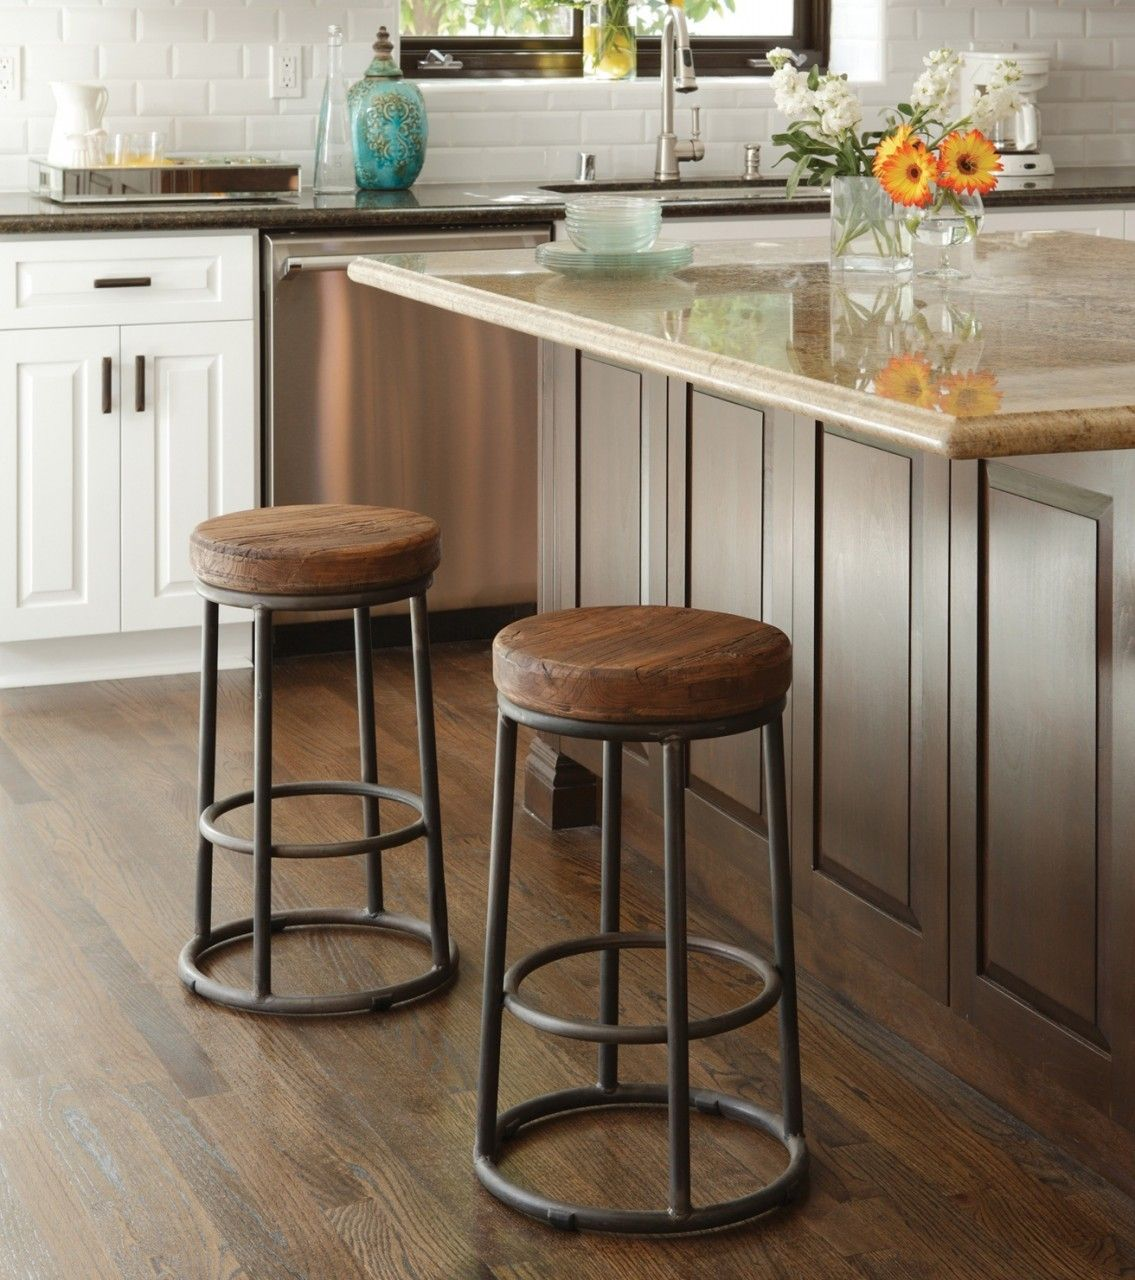 This modern take on an old classic barstool creates a show piece in any home with its reclaimed pine wood seat and it's sturdy iron base construction. Handcrafted of Salvaged wood and recycled iron Ro